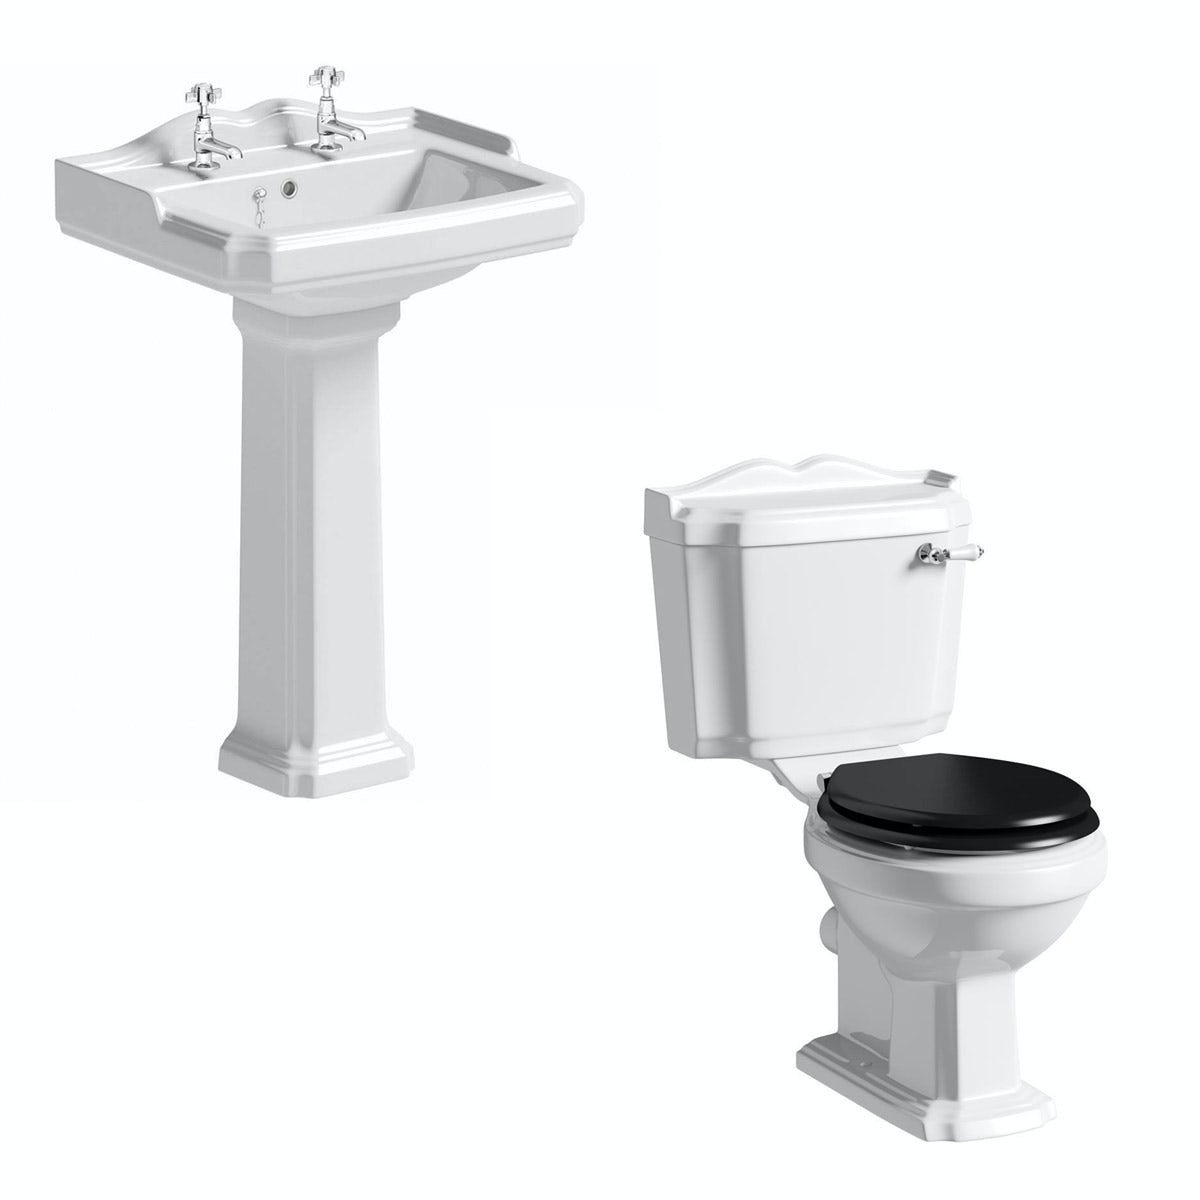 The Bath Co. Winchester cloakroom suite with black seat and full pedestal basin 600mm